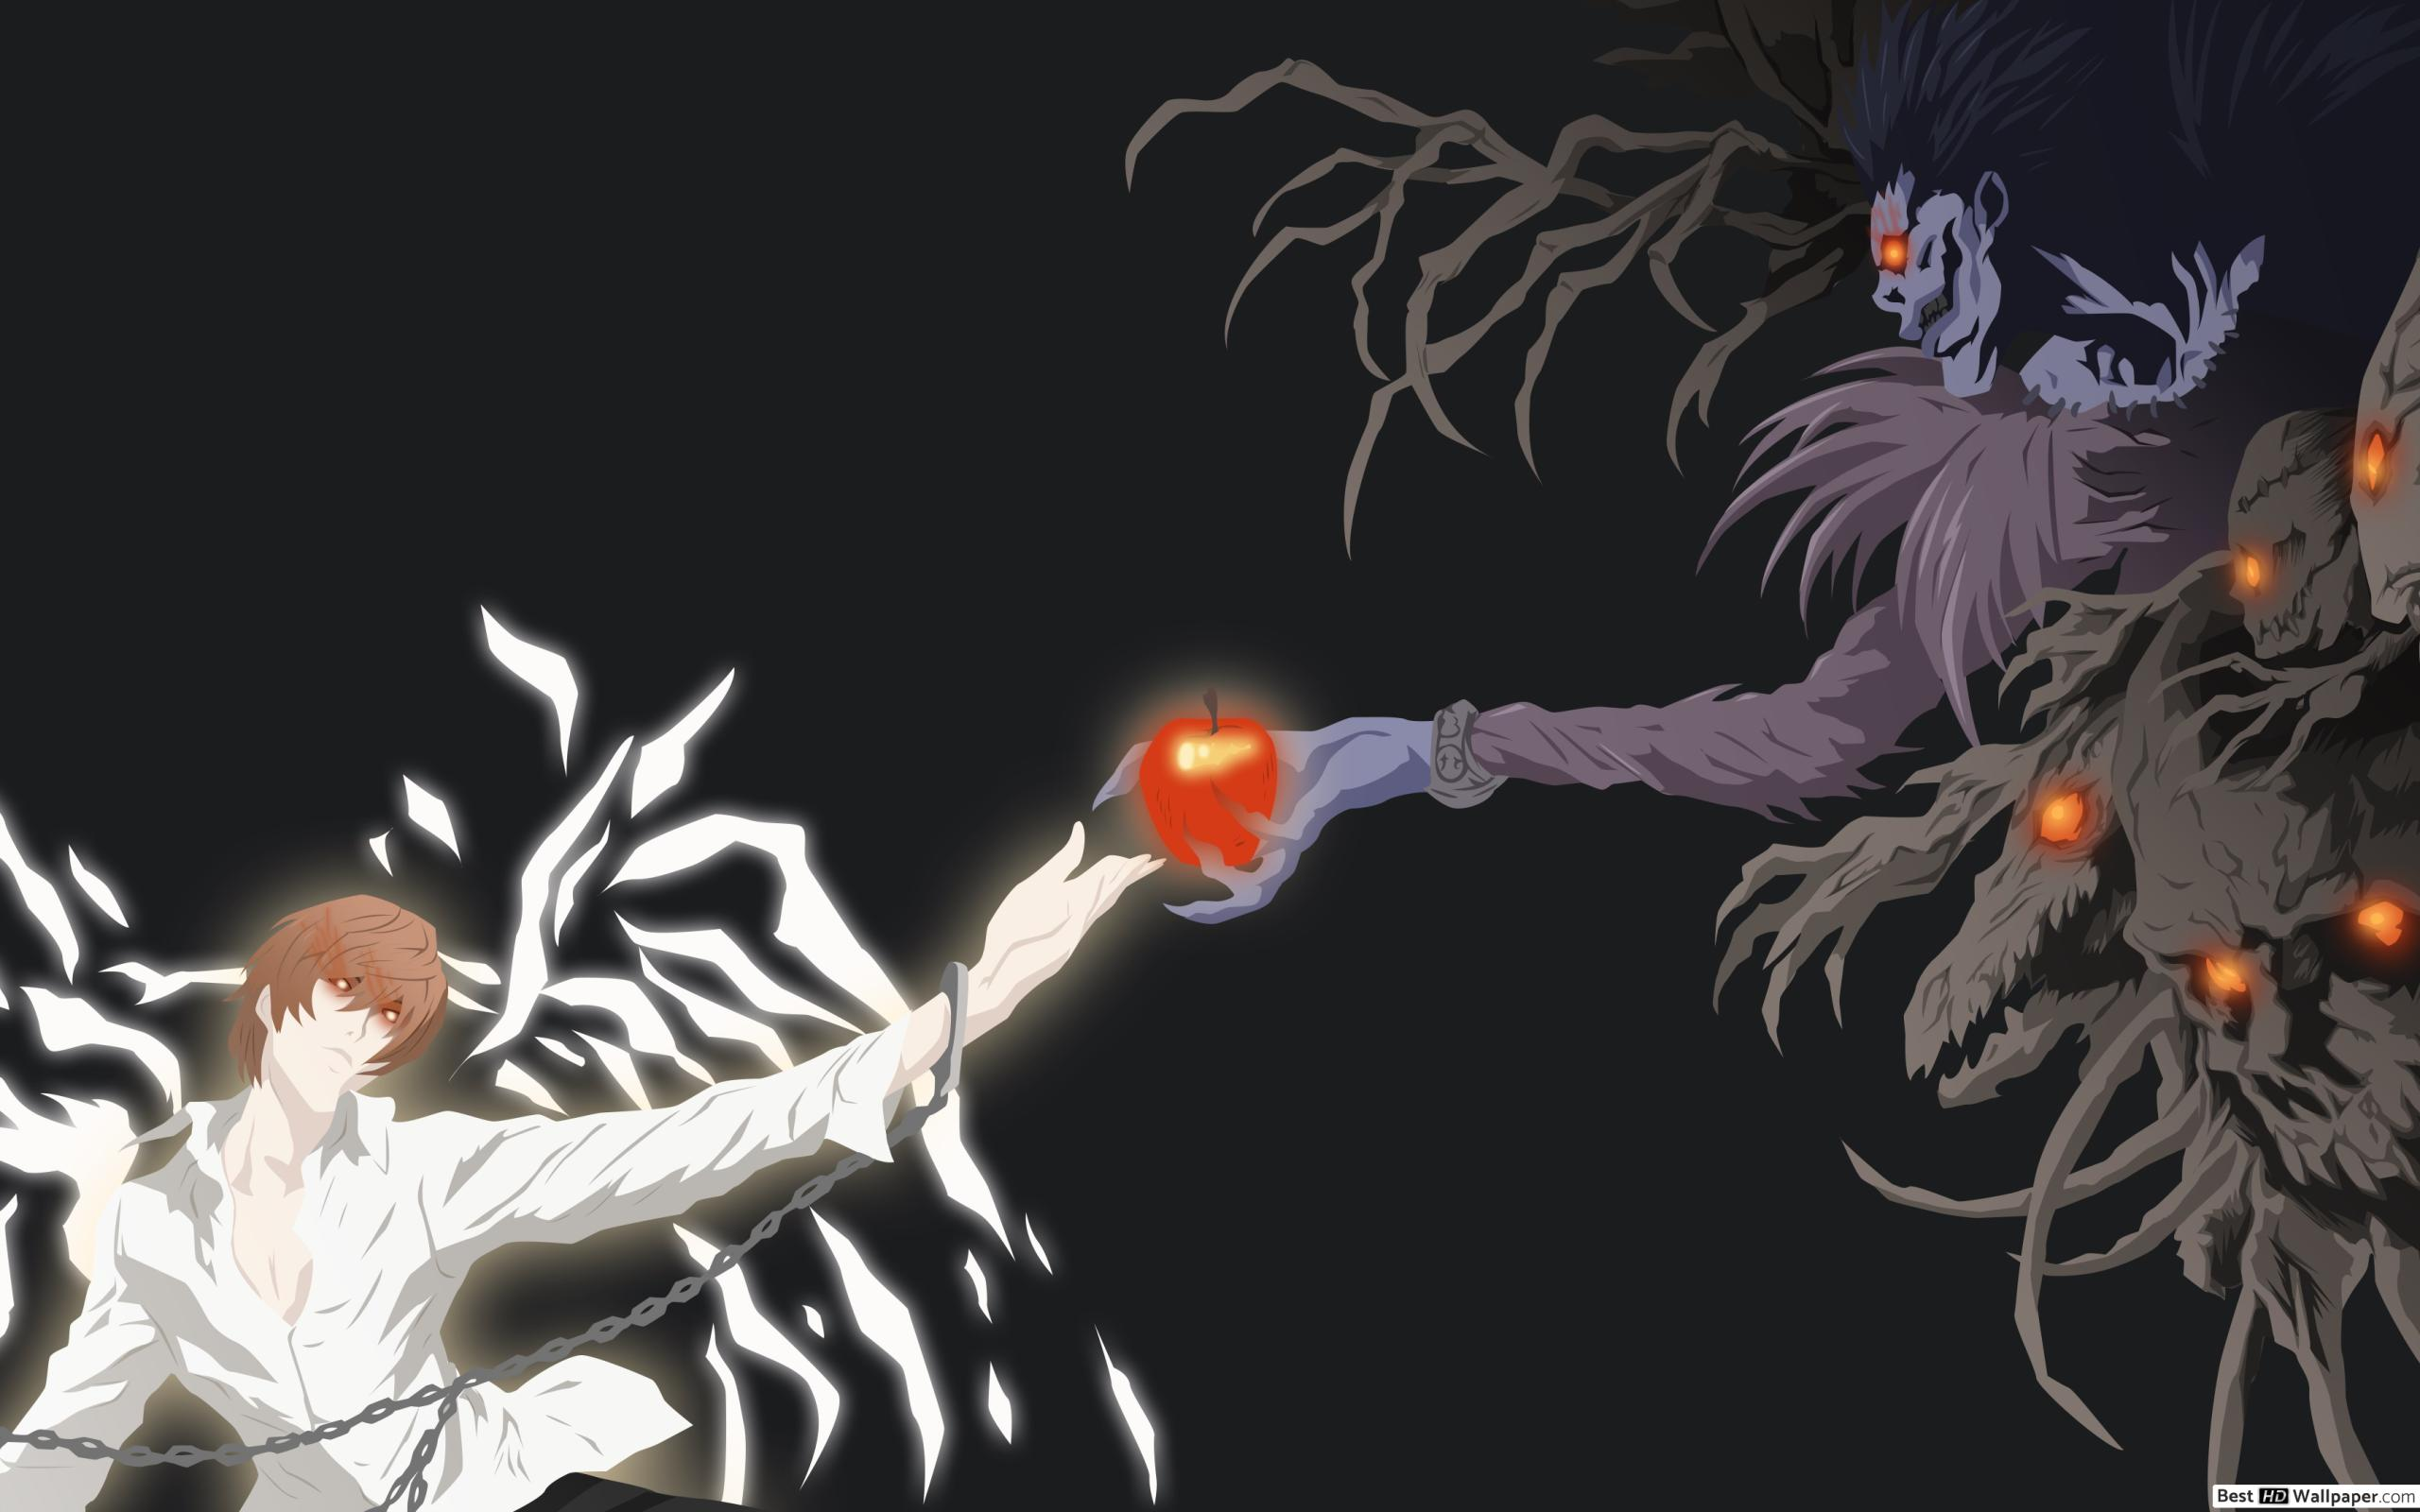 death note wallpaper,anime,organism,animation,fictional character,illustration